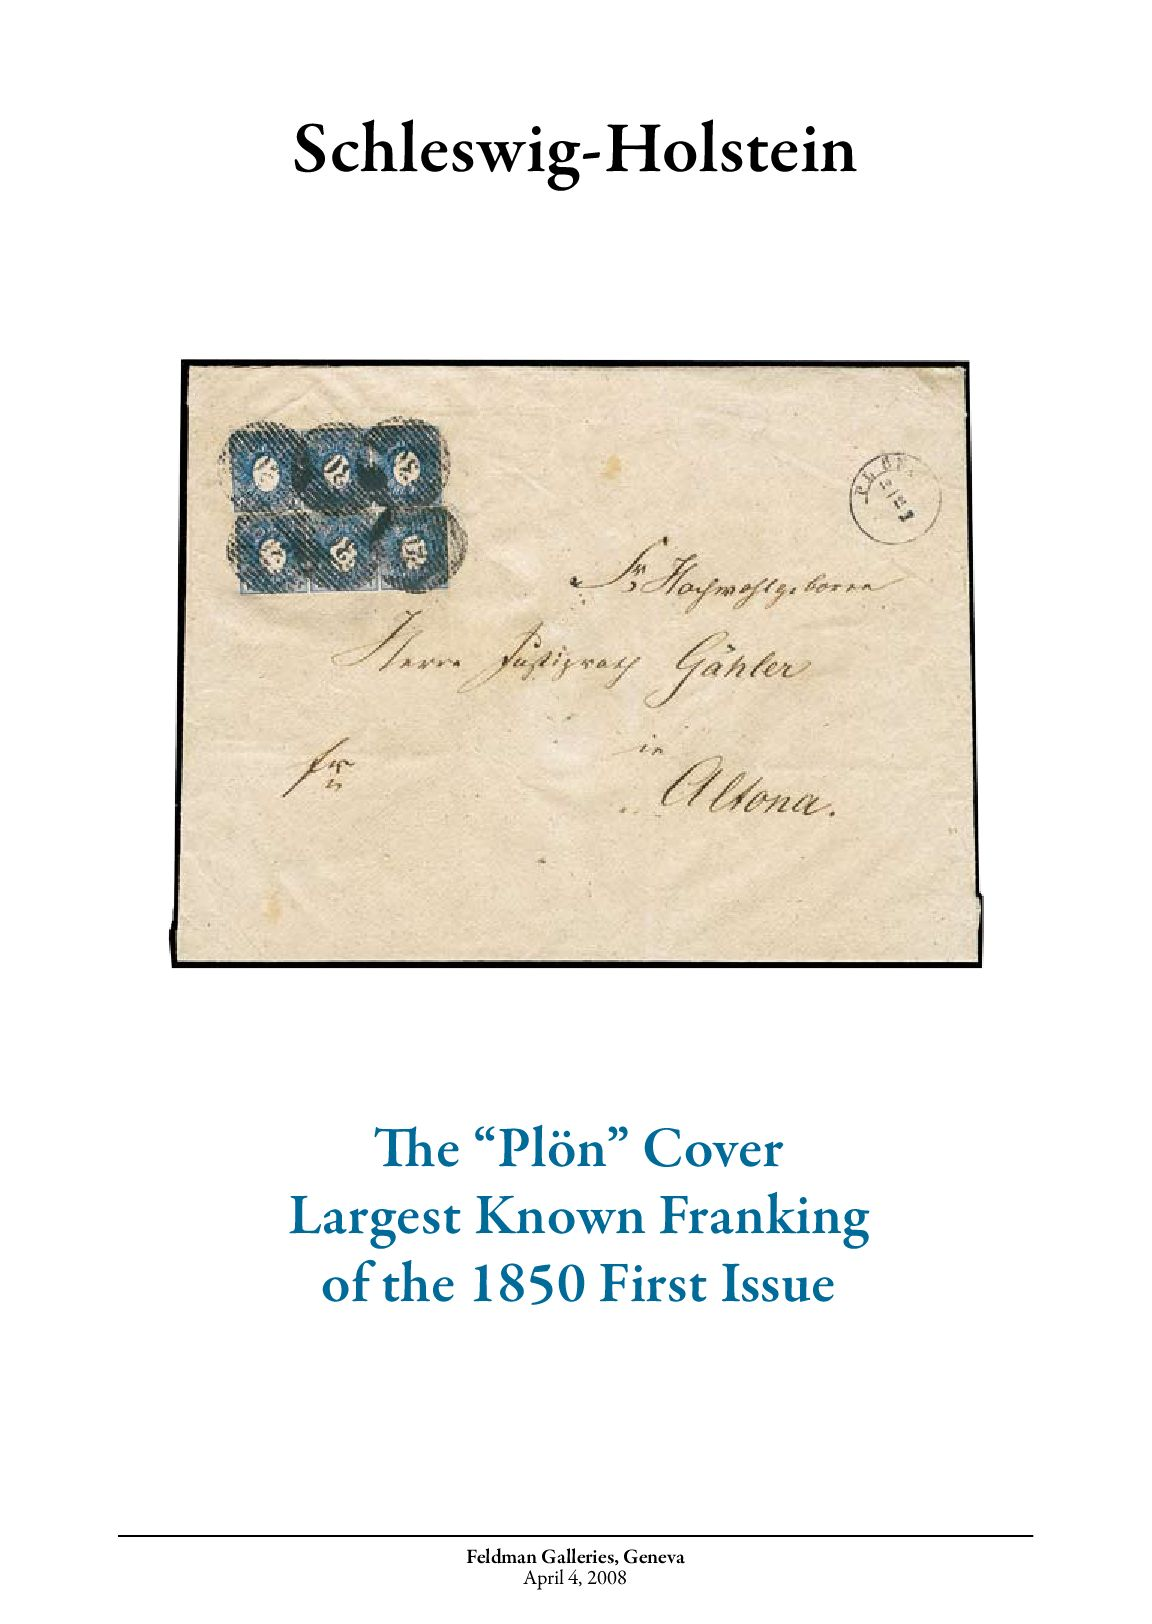 Stamps auction catalogue: Schleswig-Holstein by David